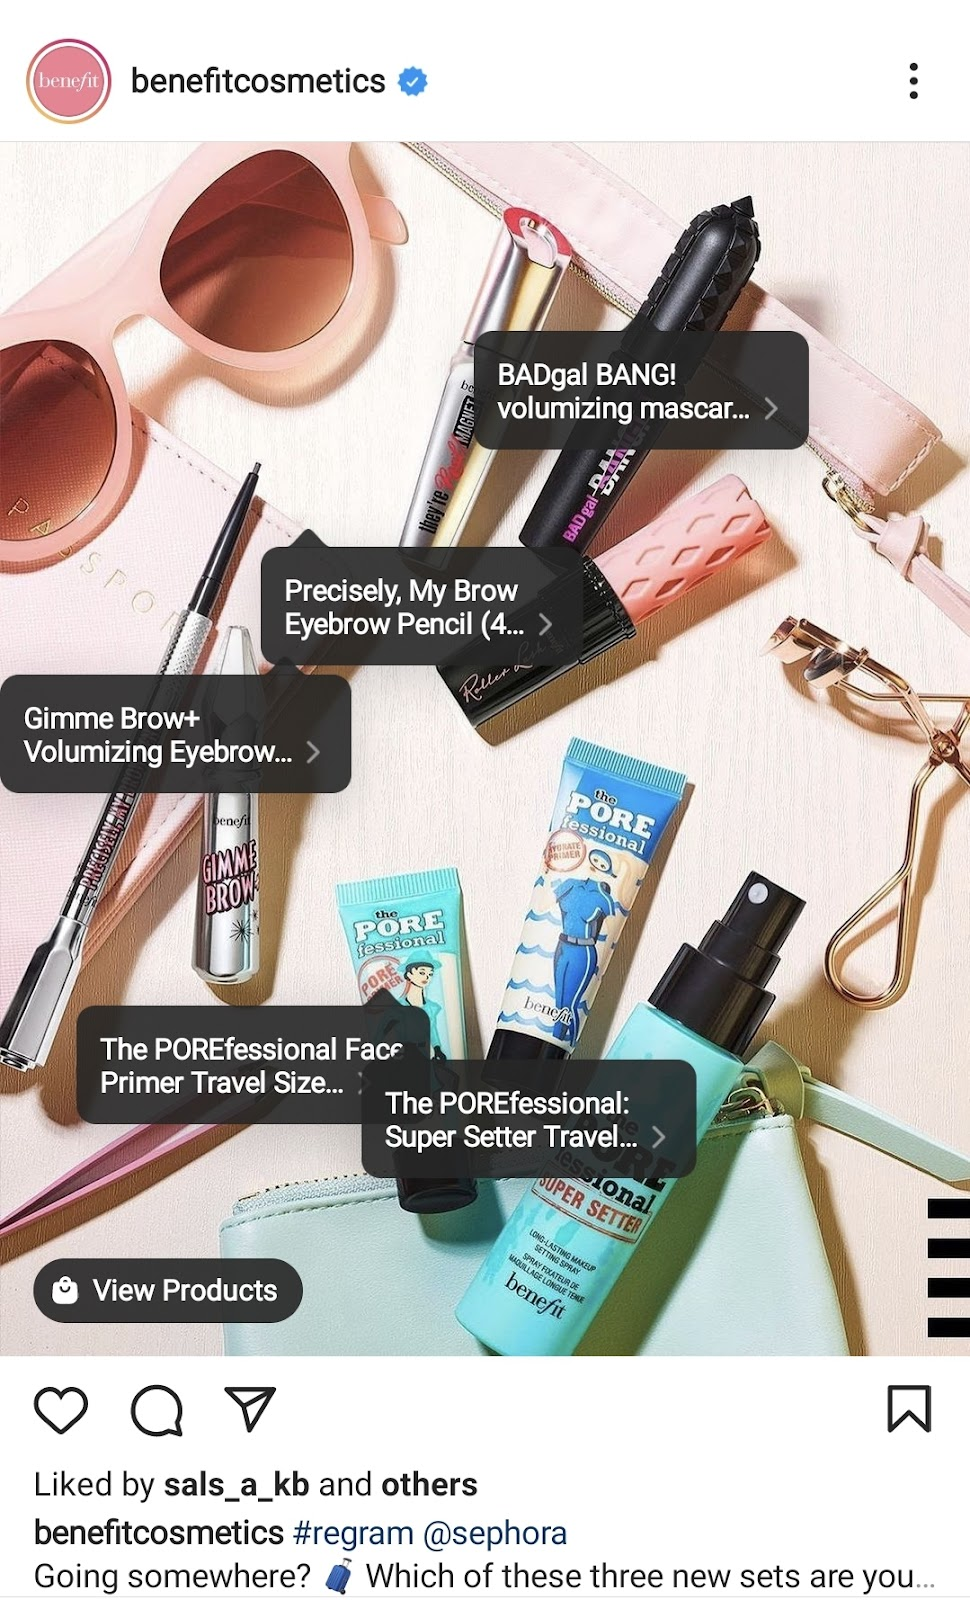 Example of tagging products in Instagram posts